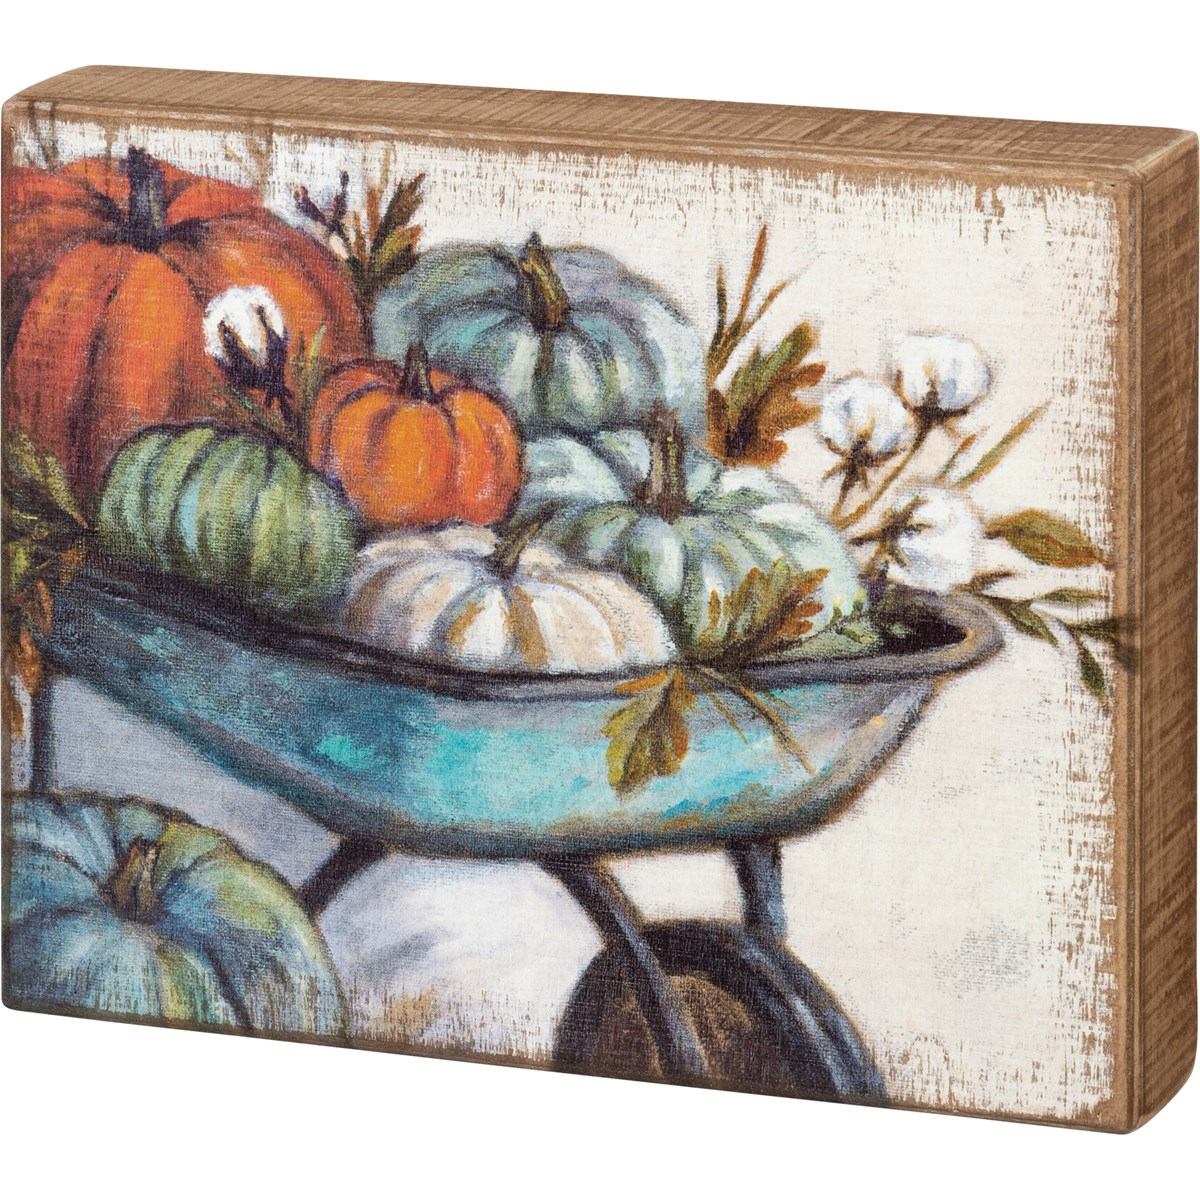 "Box Sign - Wheelbarrow Pumpkins - 10"" x 8"" x 1.75"" - Wood"